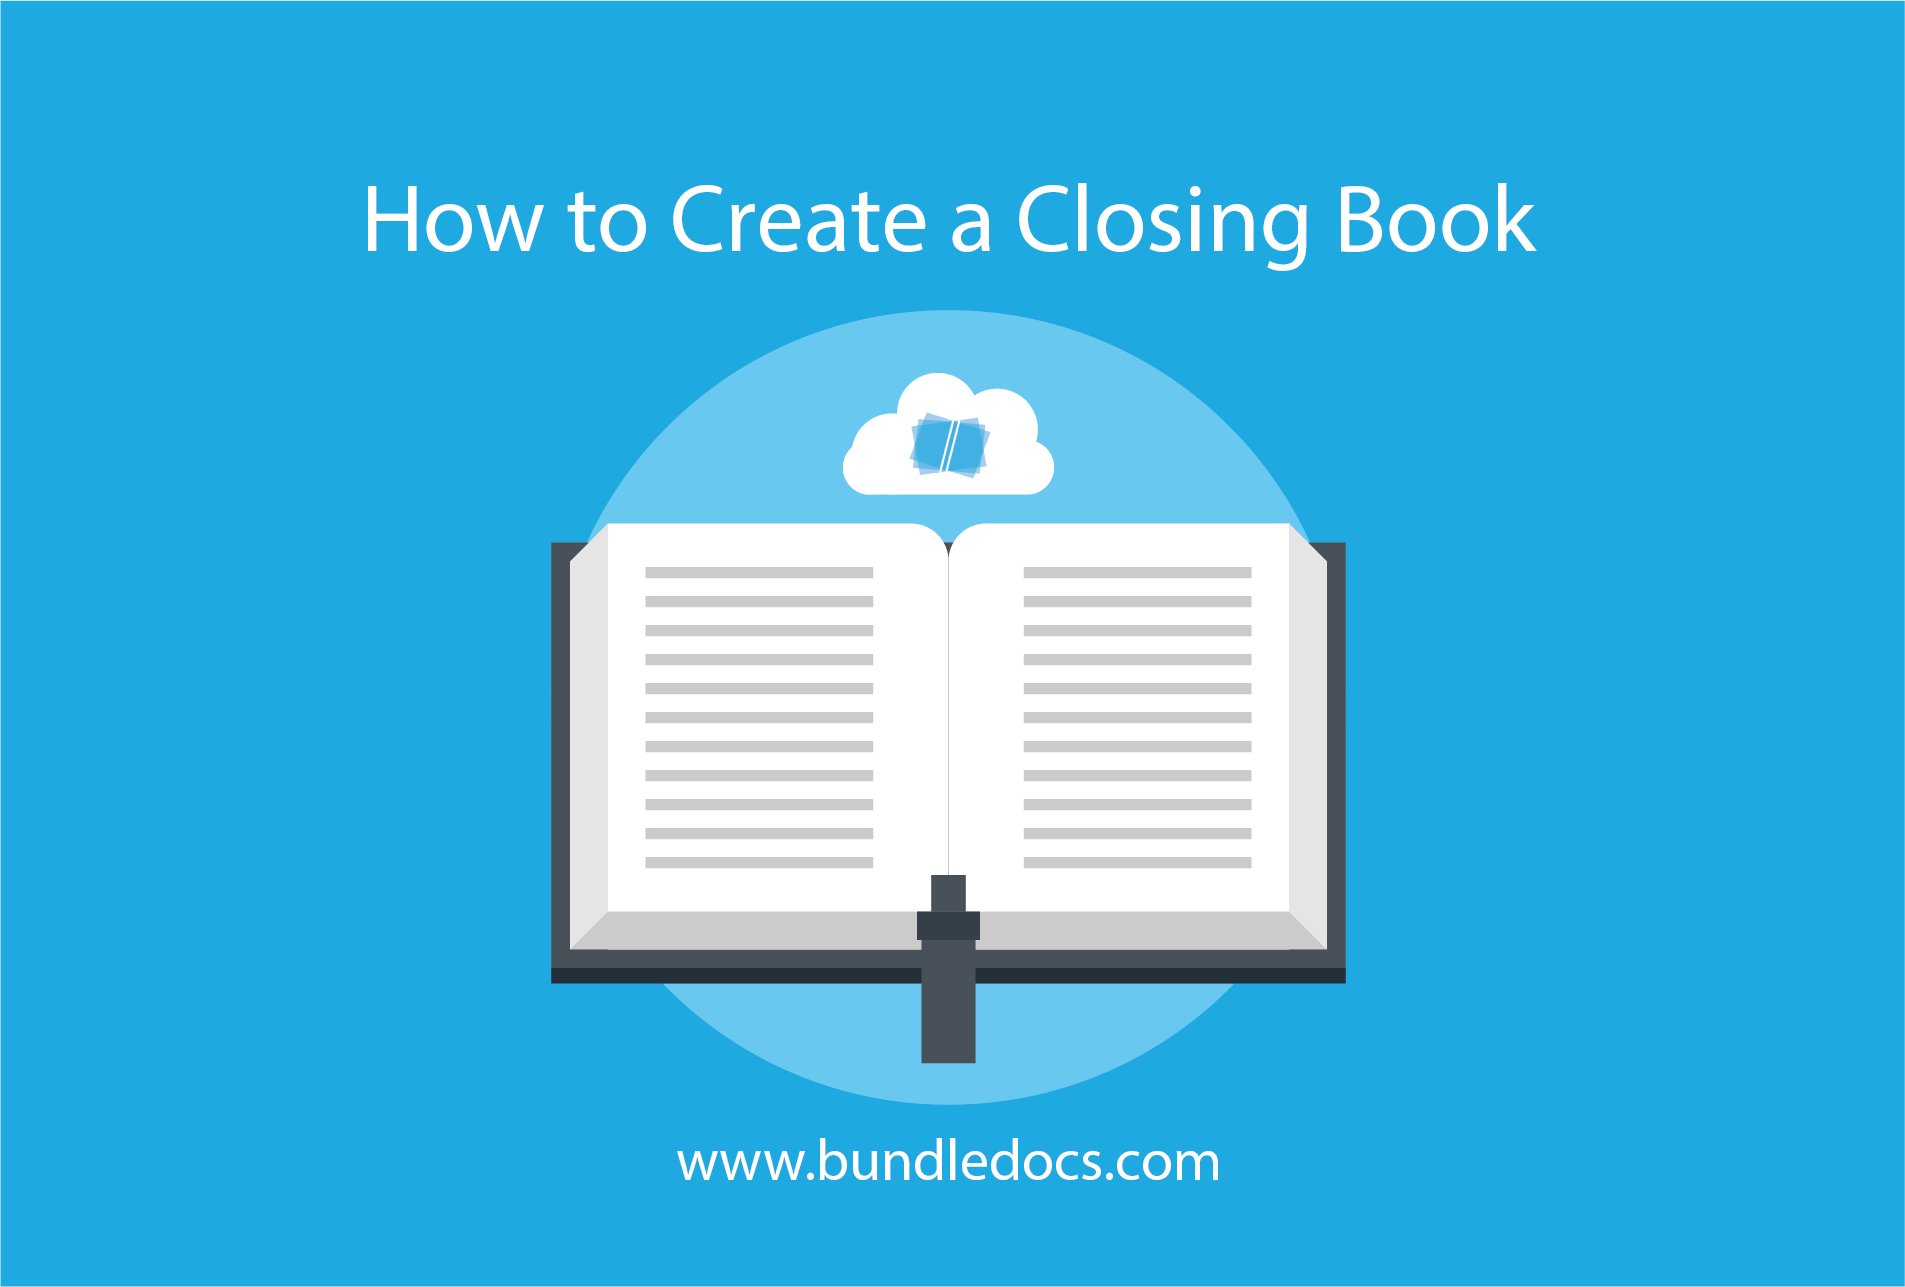 What_Is_A_Closing_Book_How_To_Create_Closing_Binder_Bundledocs.png